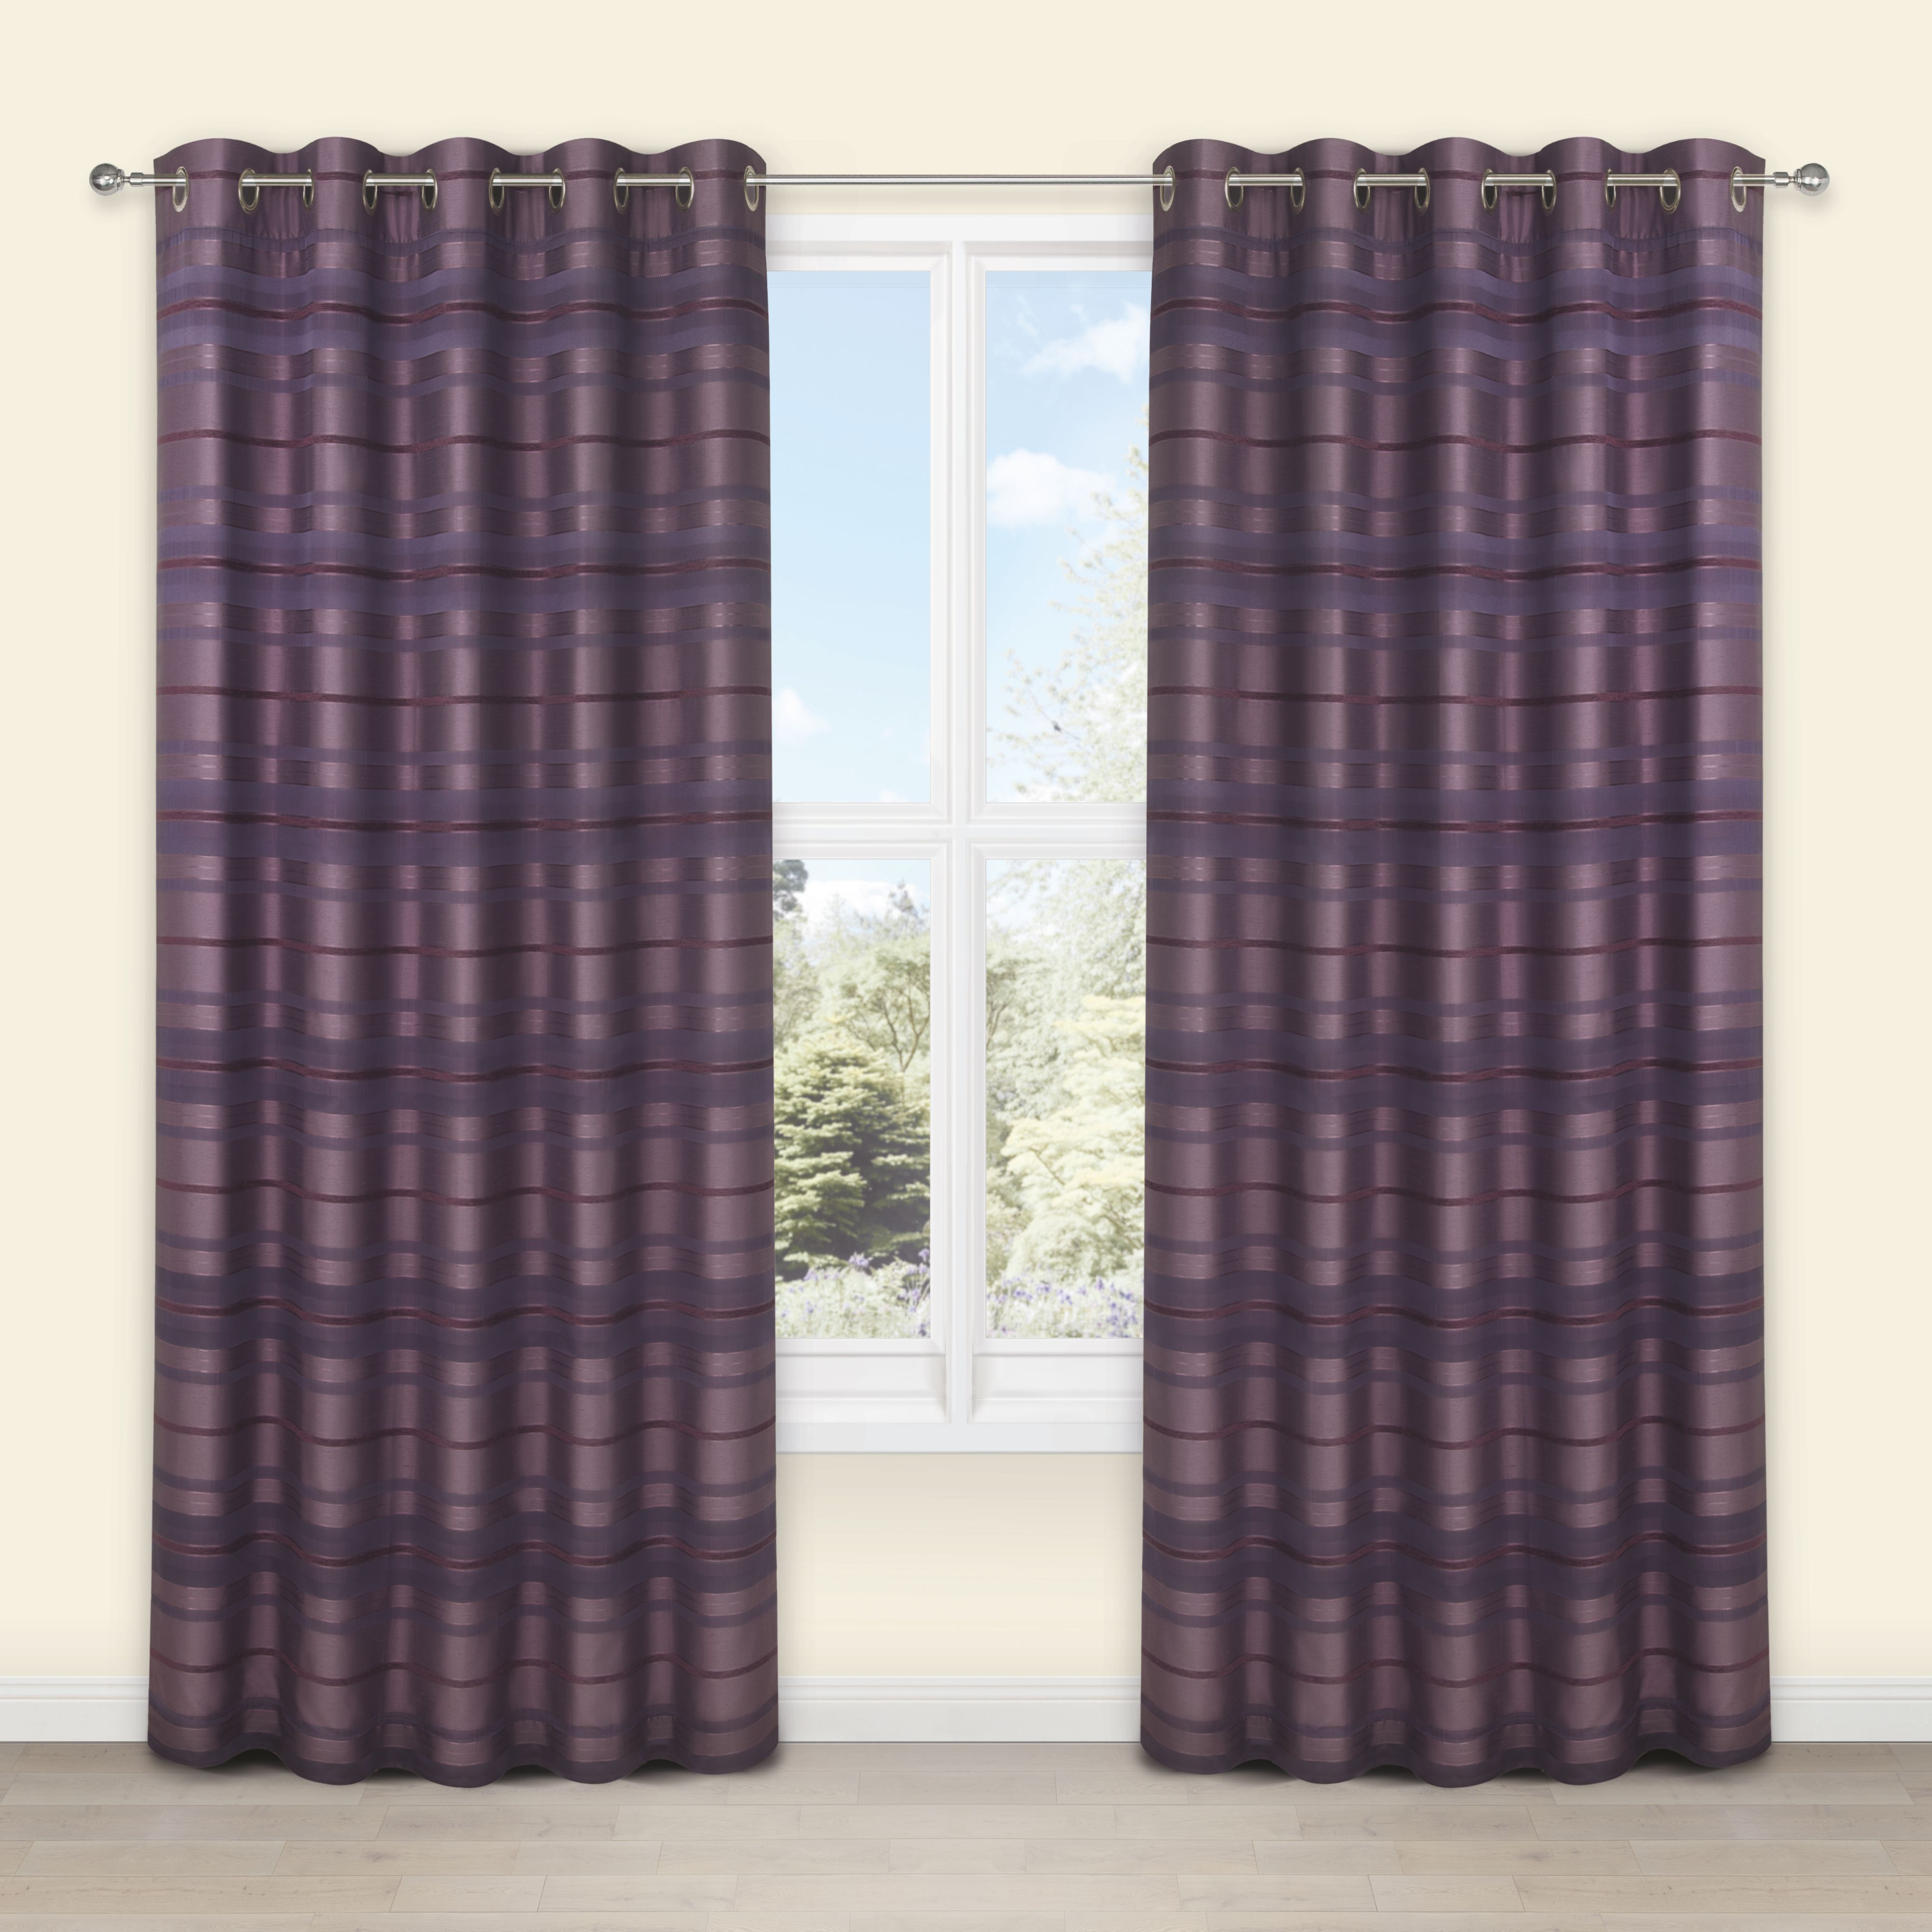 Sarina Blueberry Amp Plum Striped Woven Eyelet Curtains W